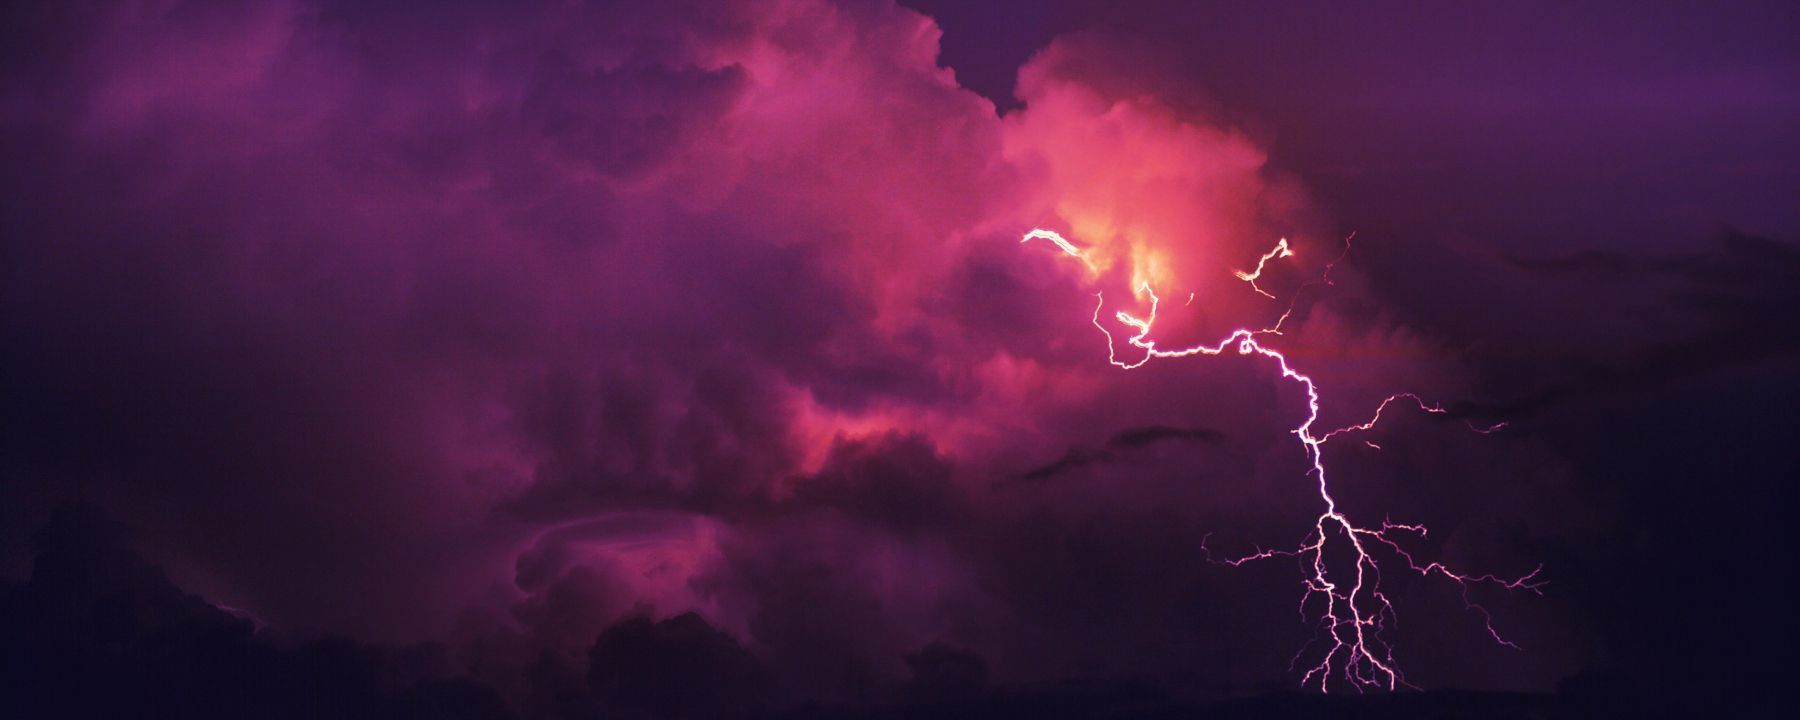 Lightning Might Have Sparked Early Life on Earth